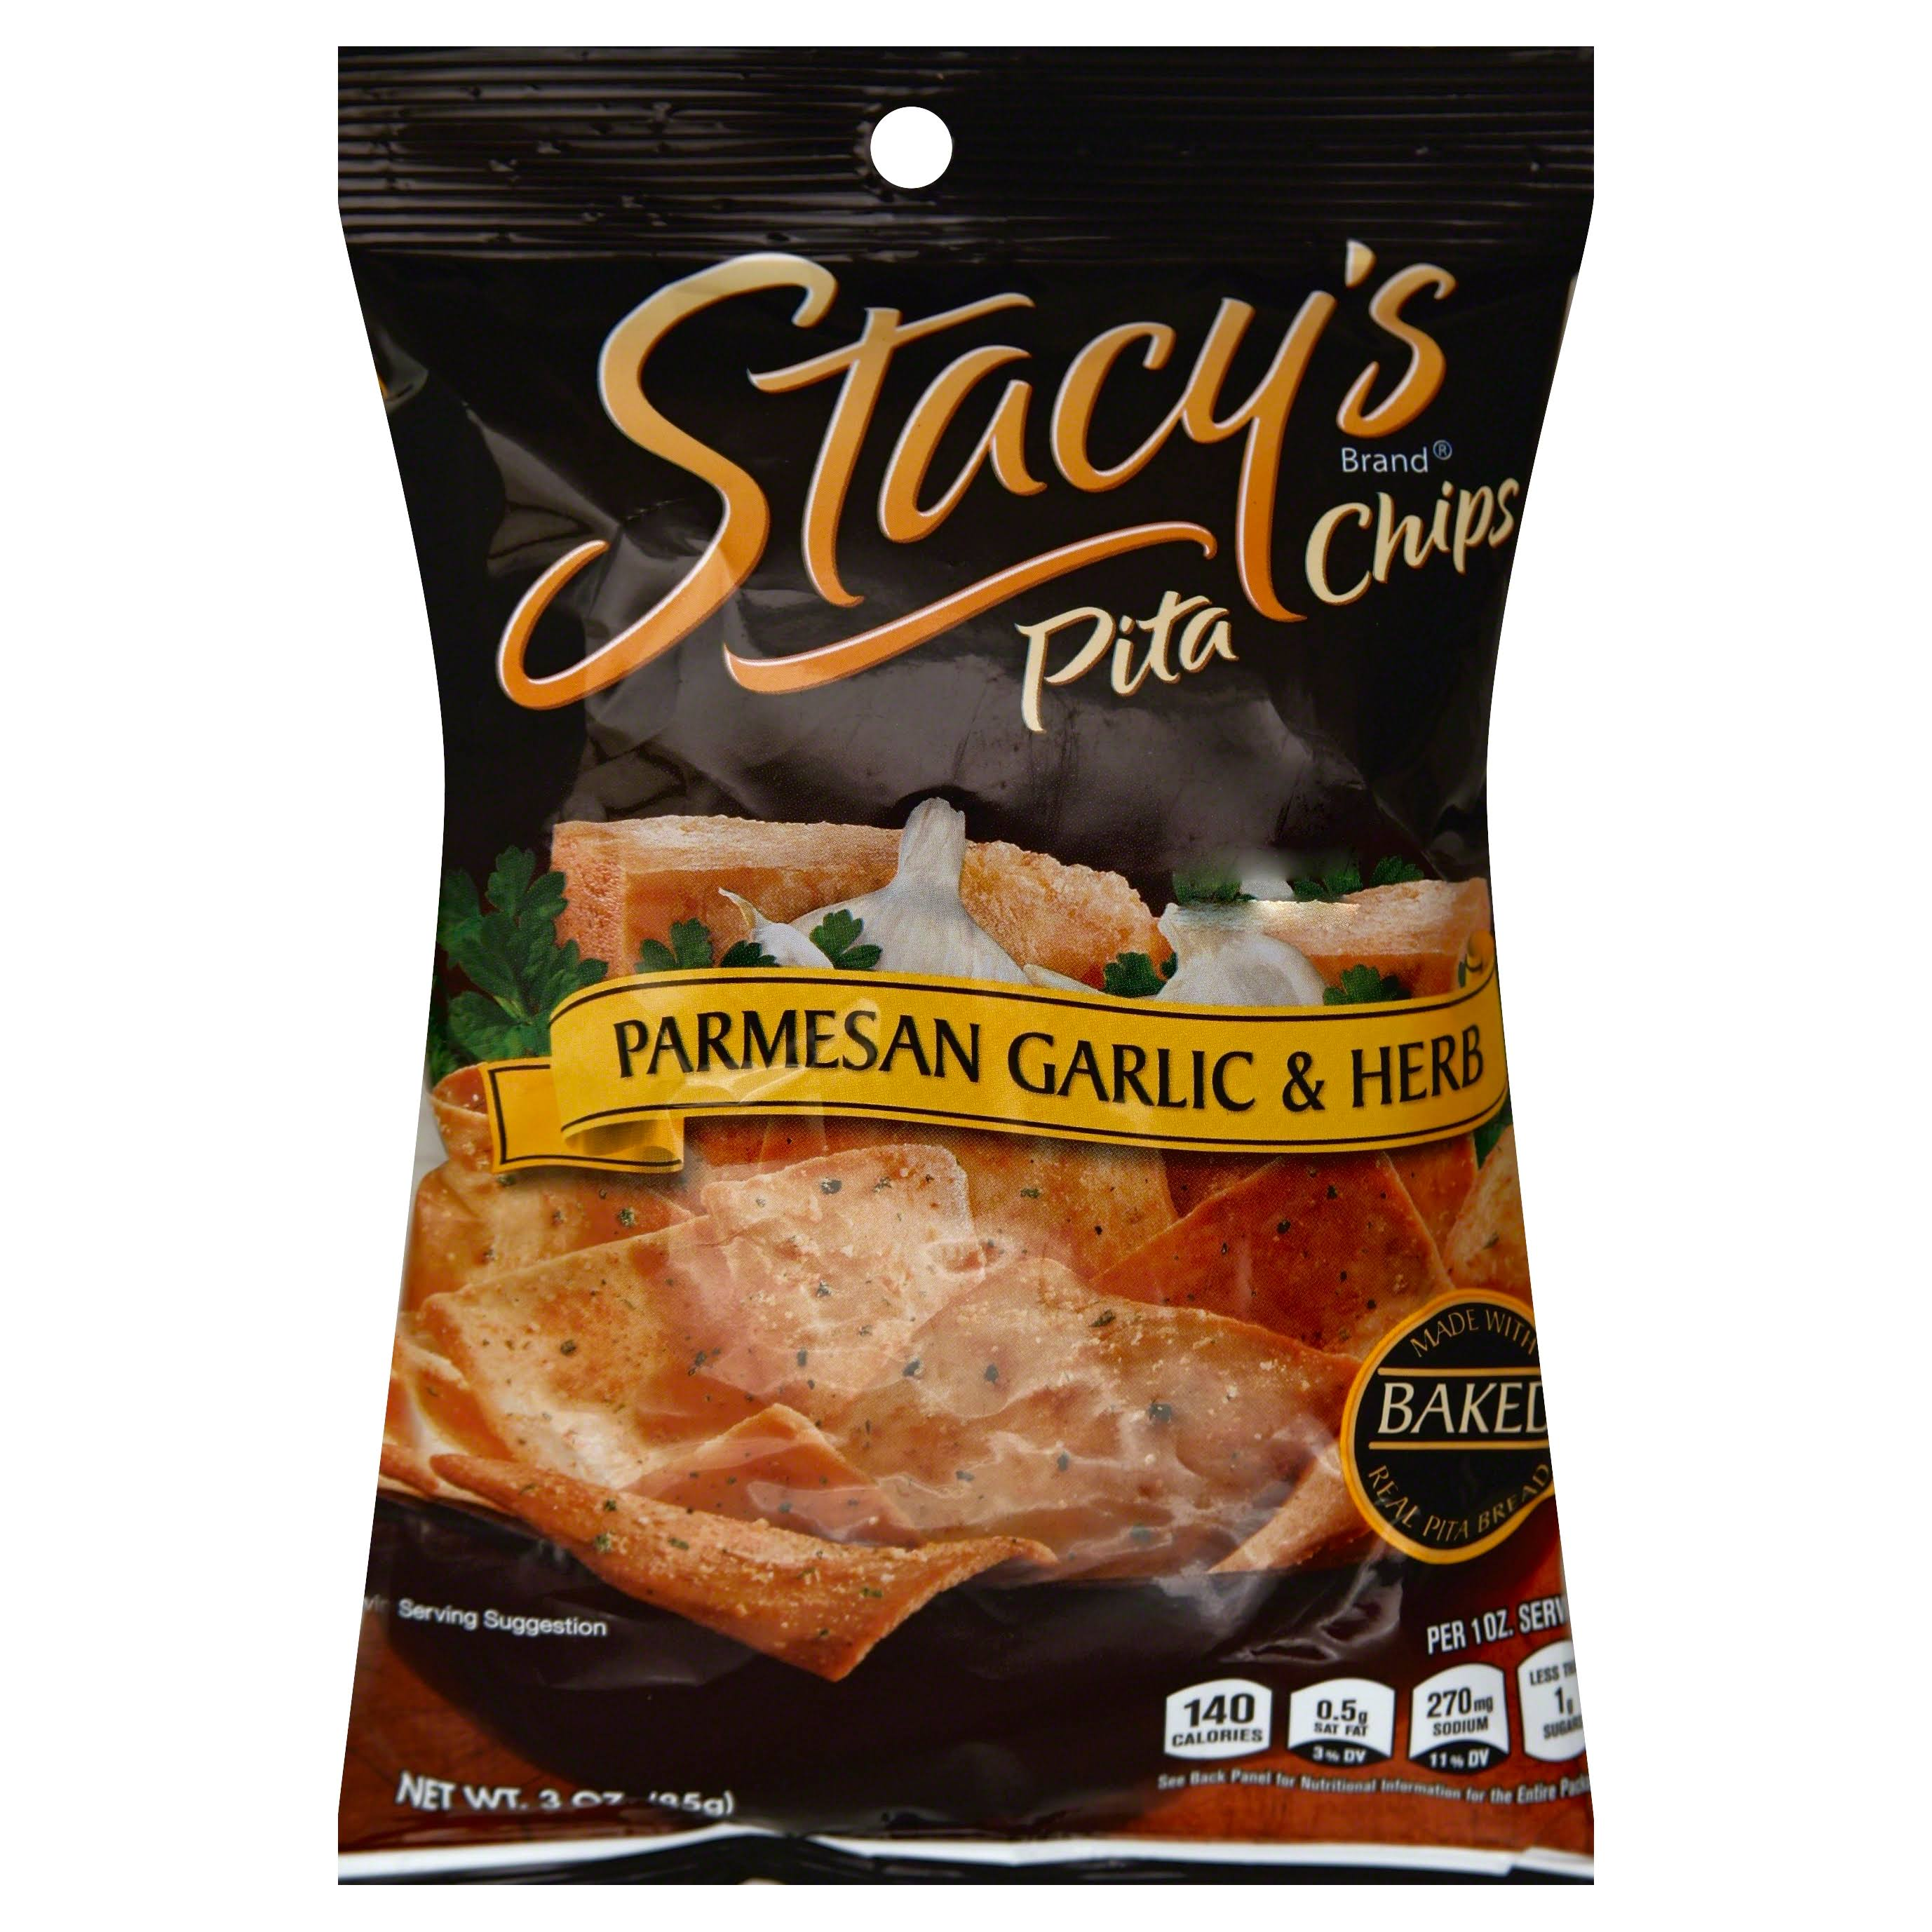 Stacey's Pita Chips - Parmesan Garlic & Herb